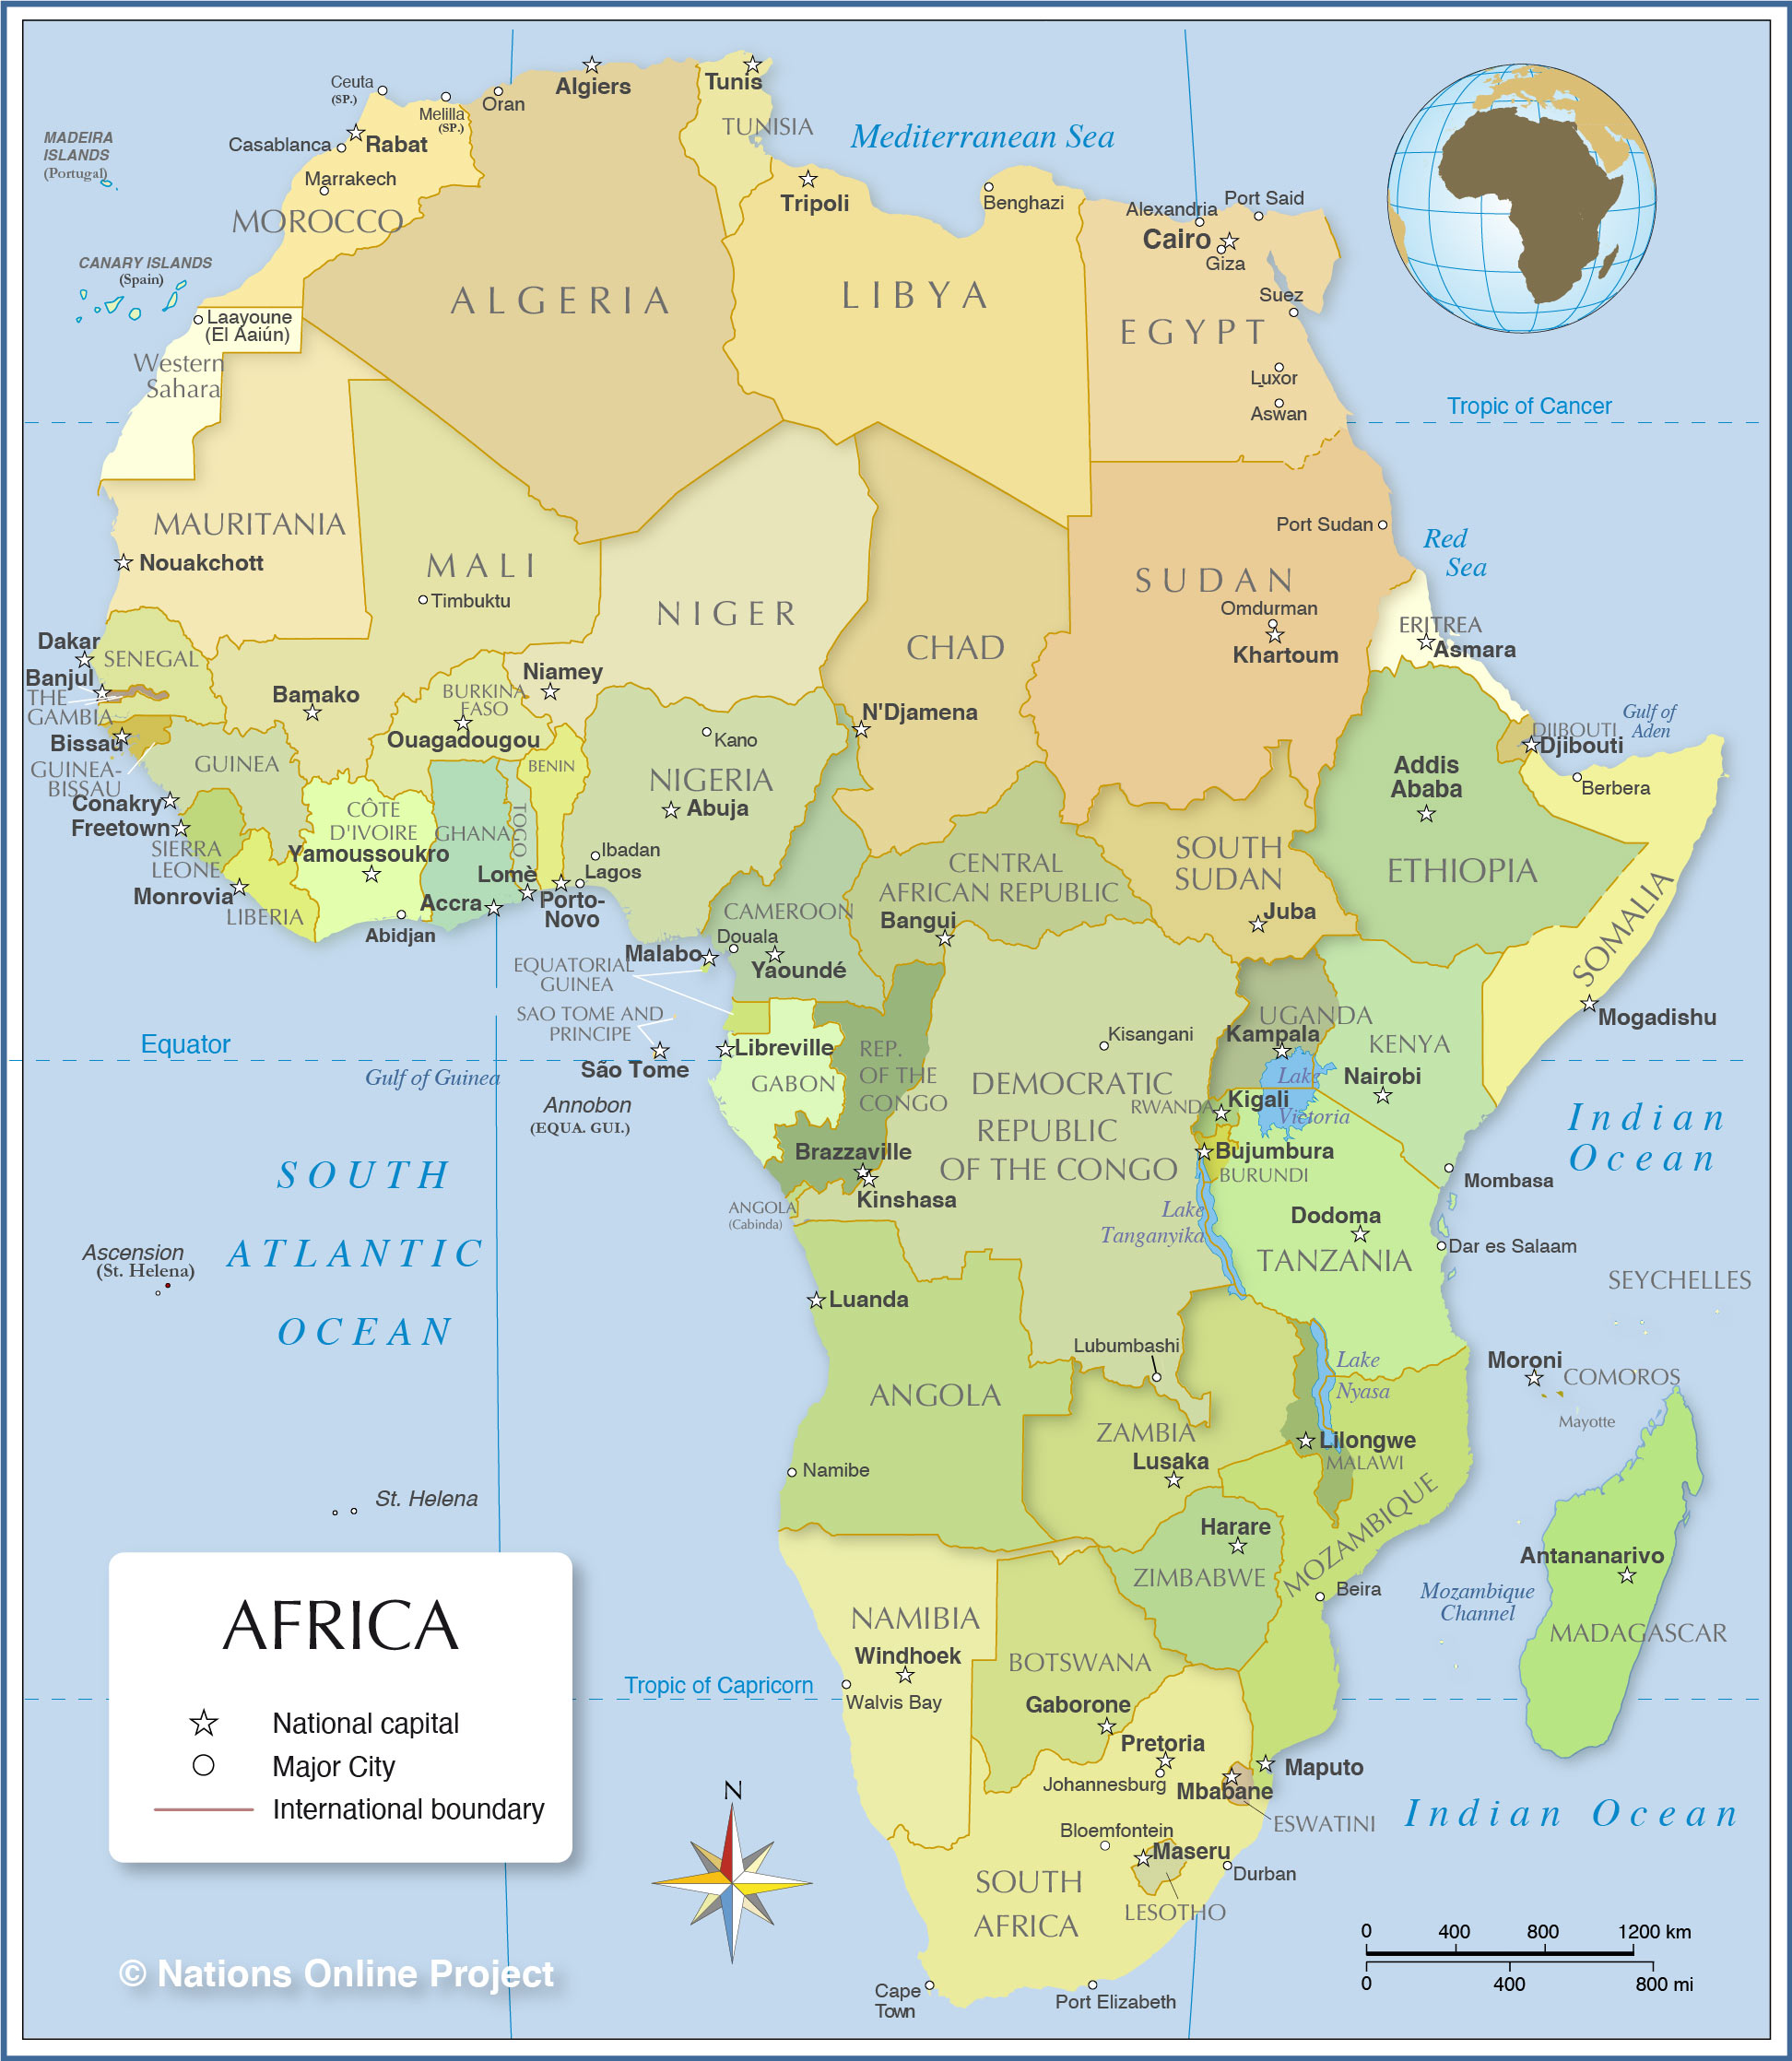 Map Of Africa Countries Of Africa Nations Online Project - Map of usa with states and capitals and major cities